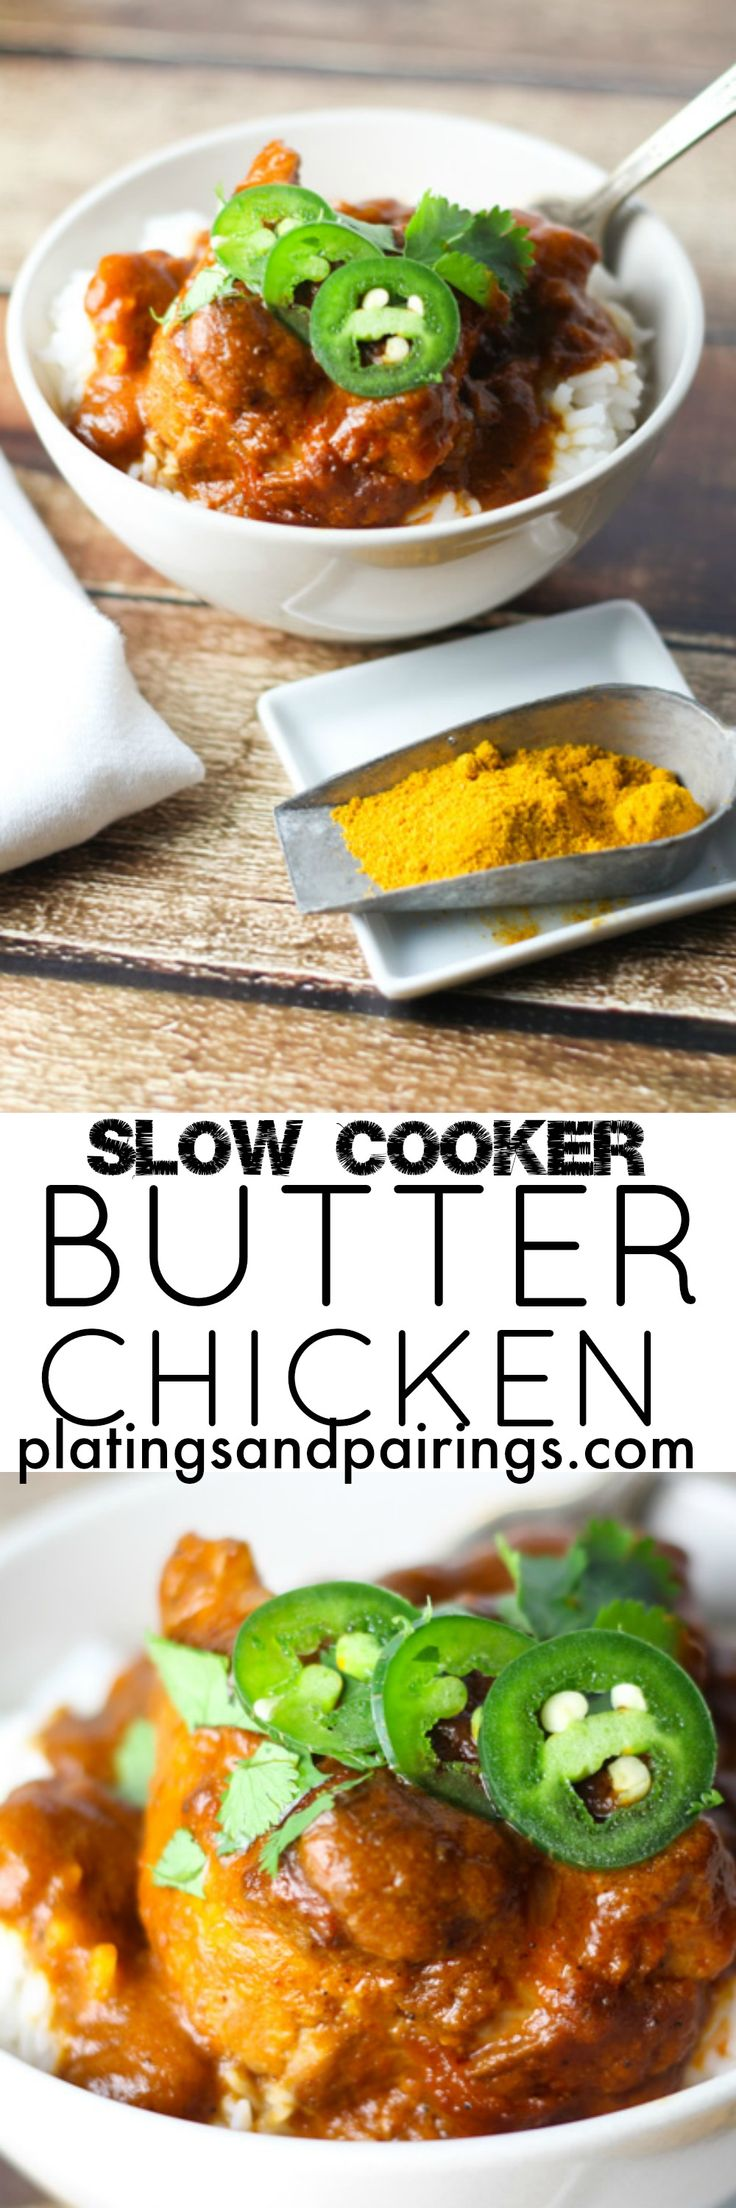 This was SO easy and SO yummy too! platingsandpairings.com